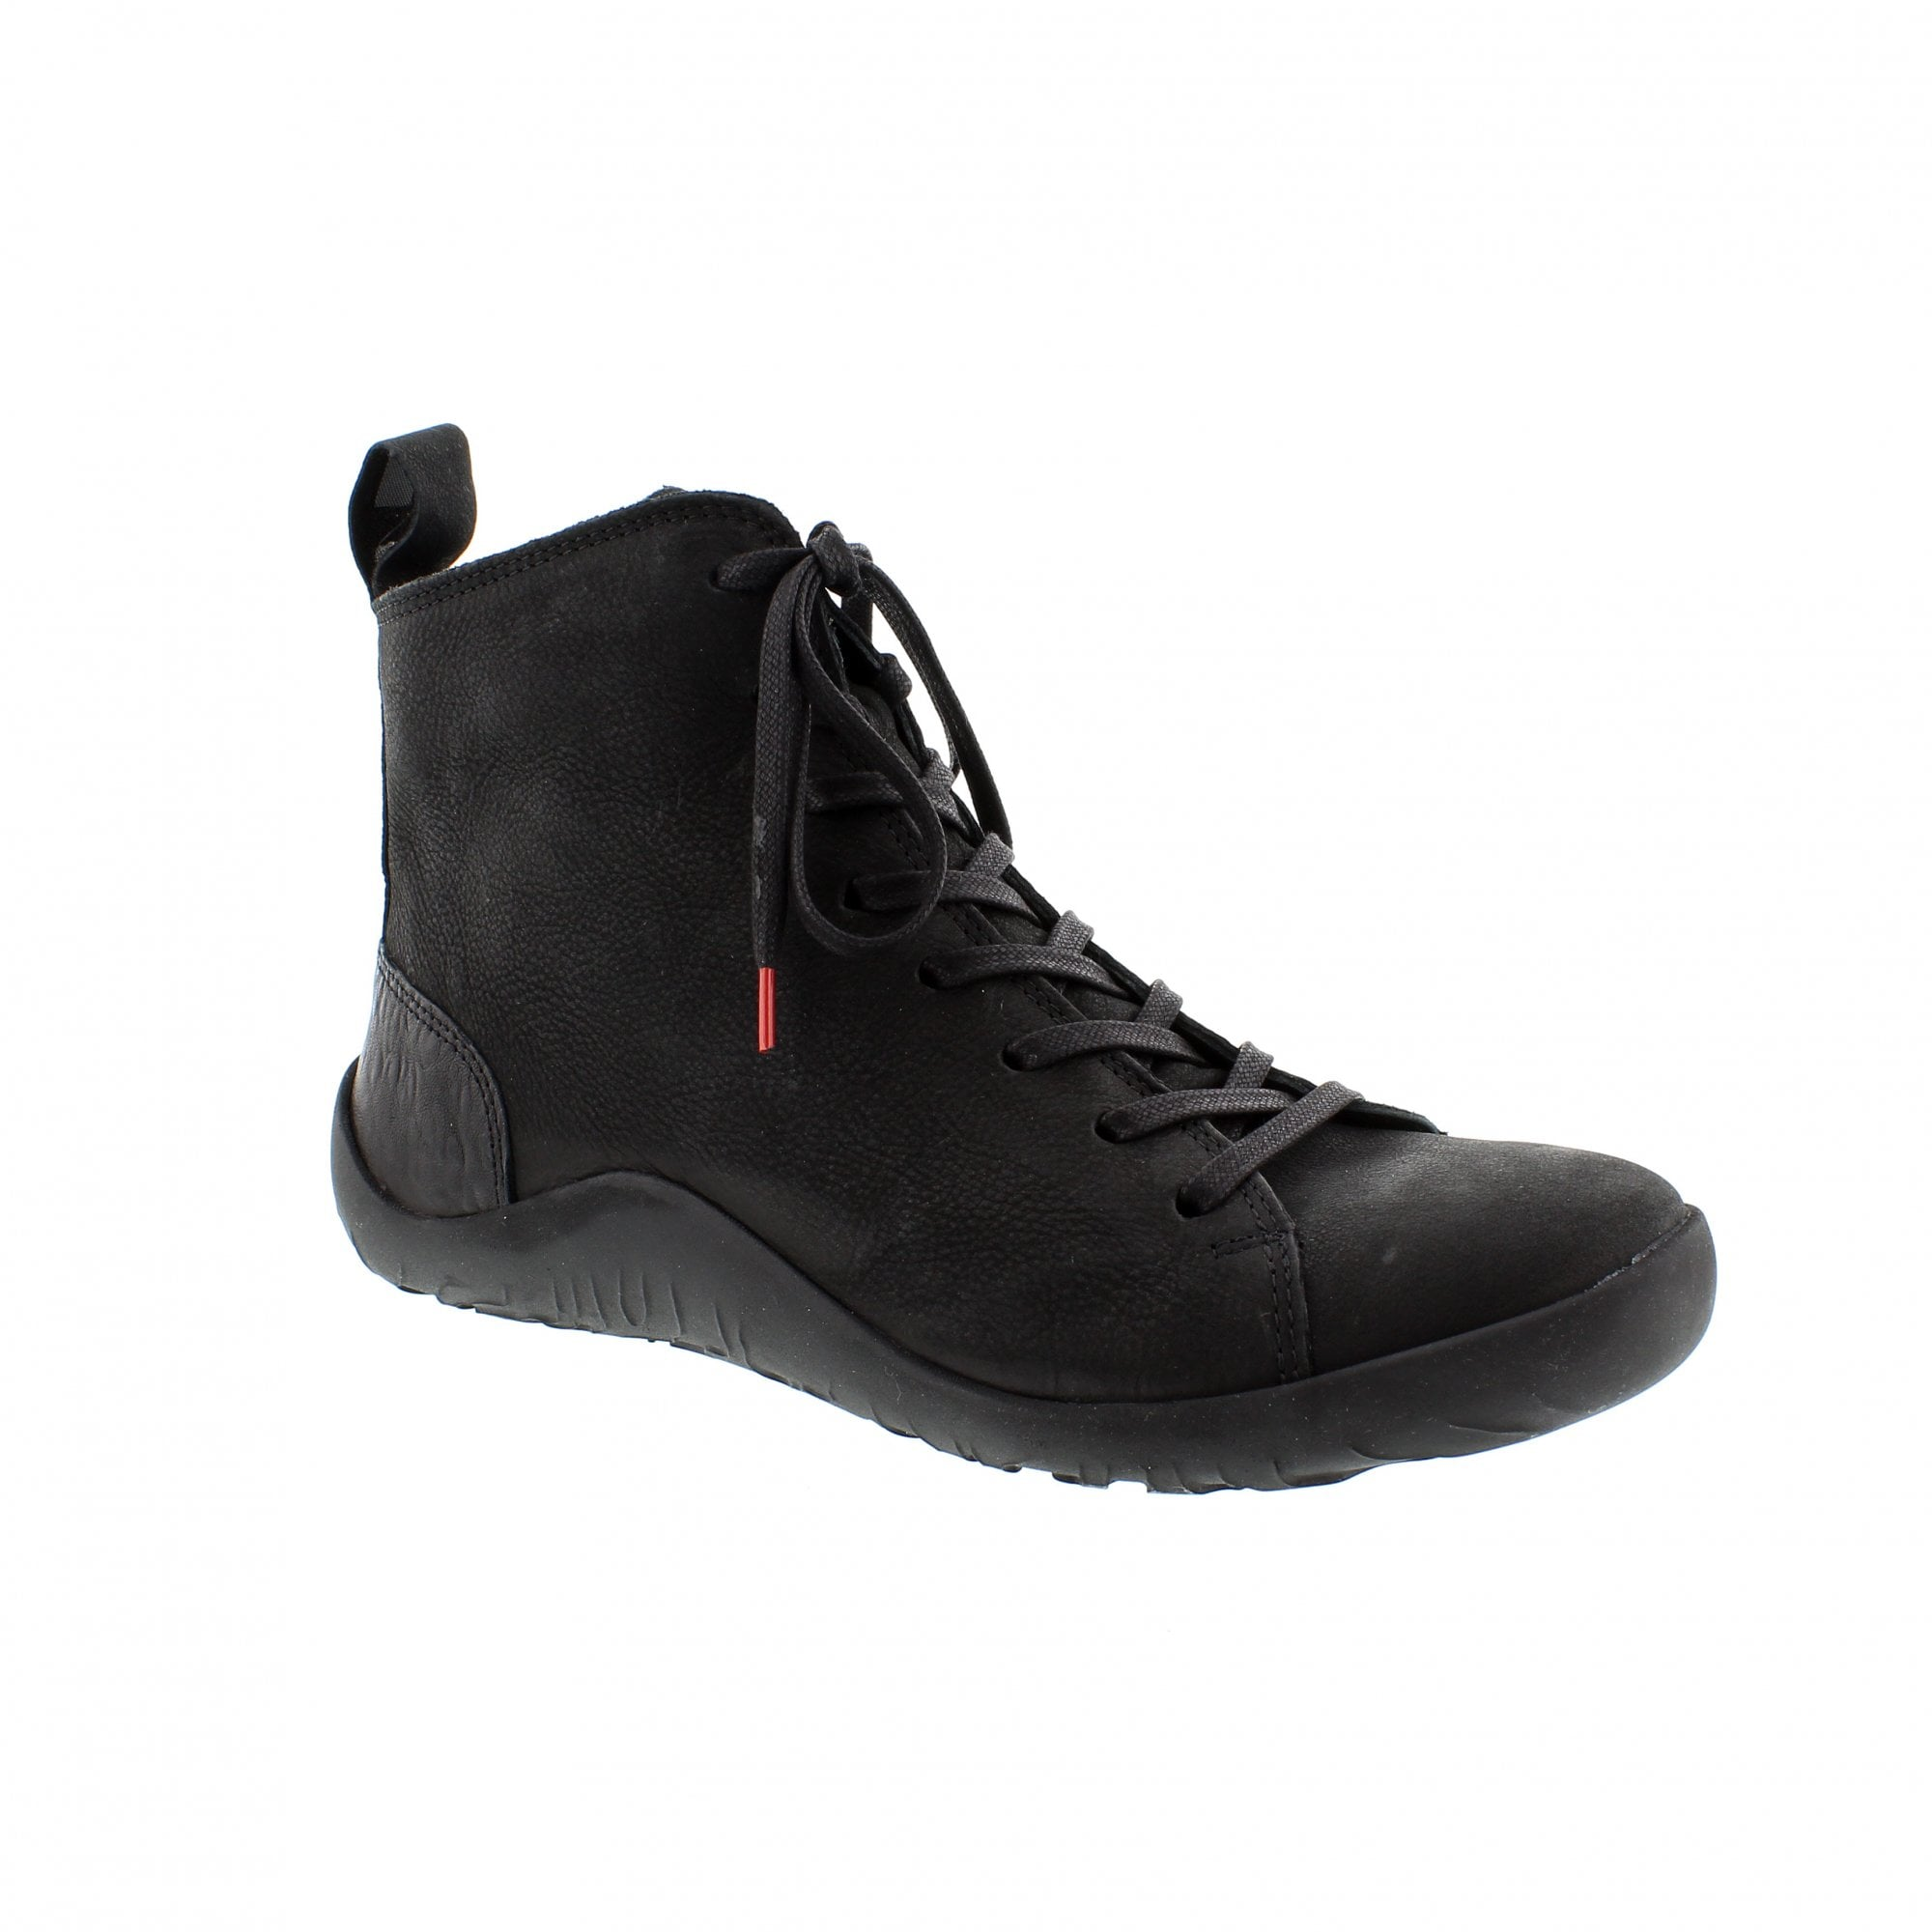 3758c643a810e2 Think! Getscho 83055-09 Womens Ankle Boots